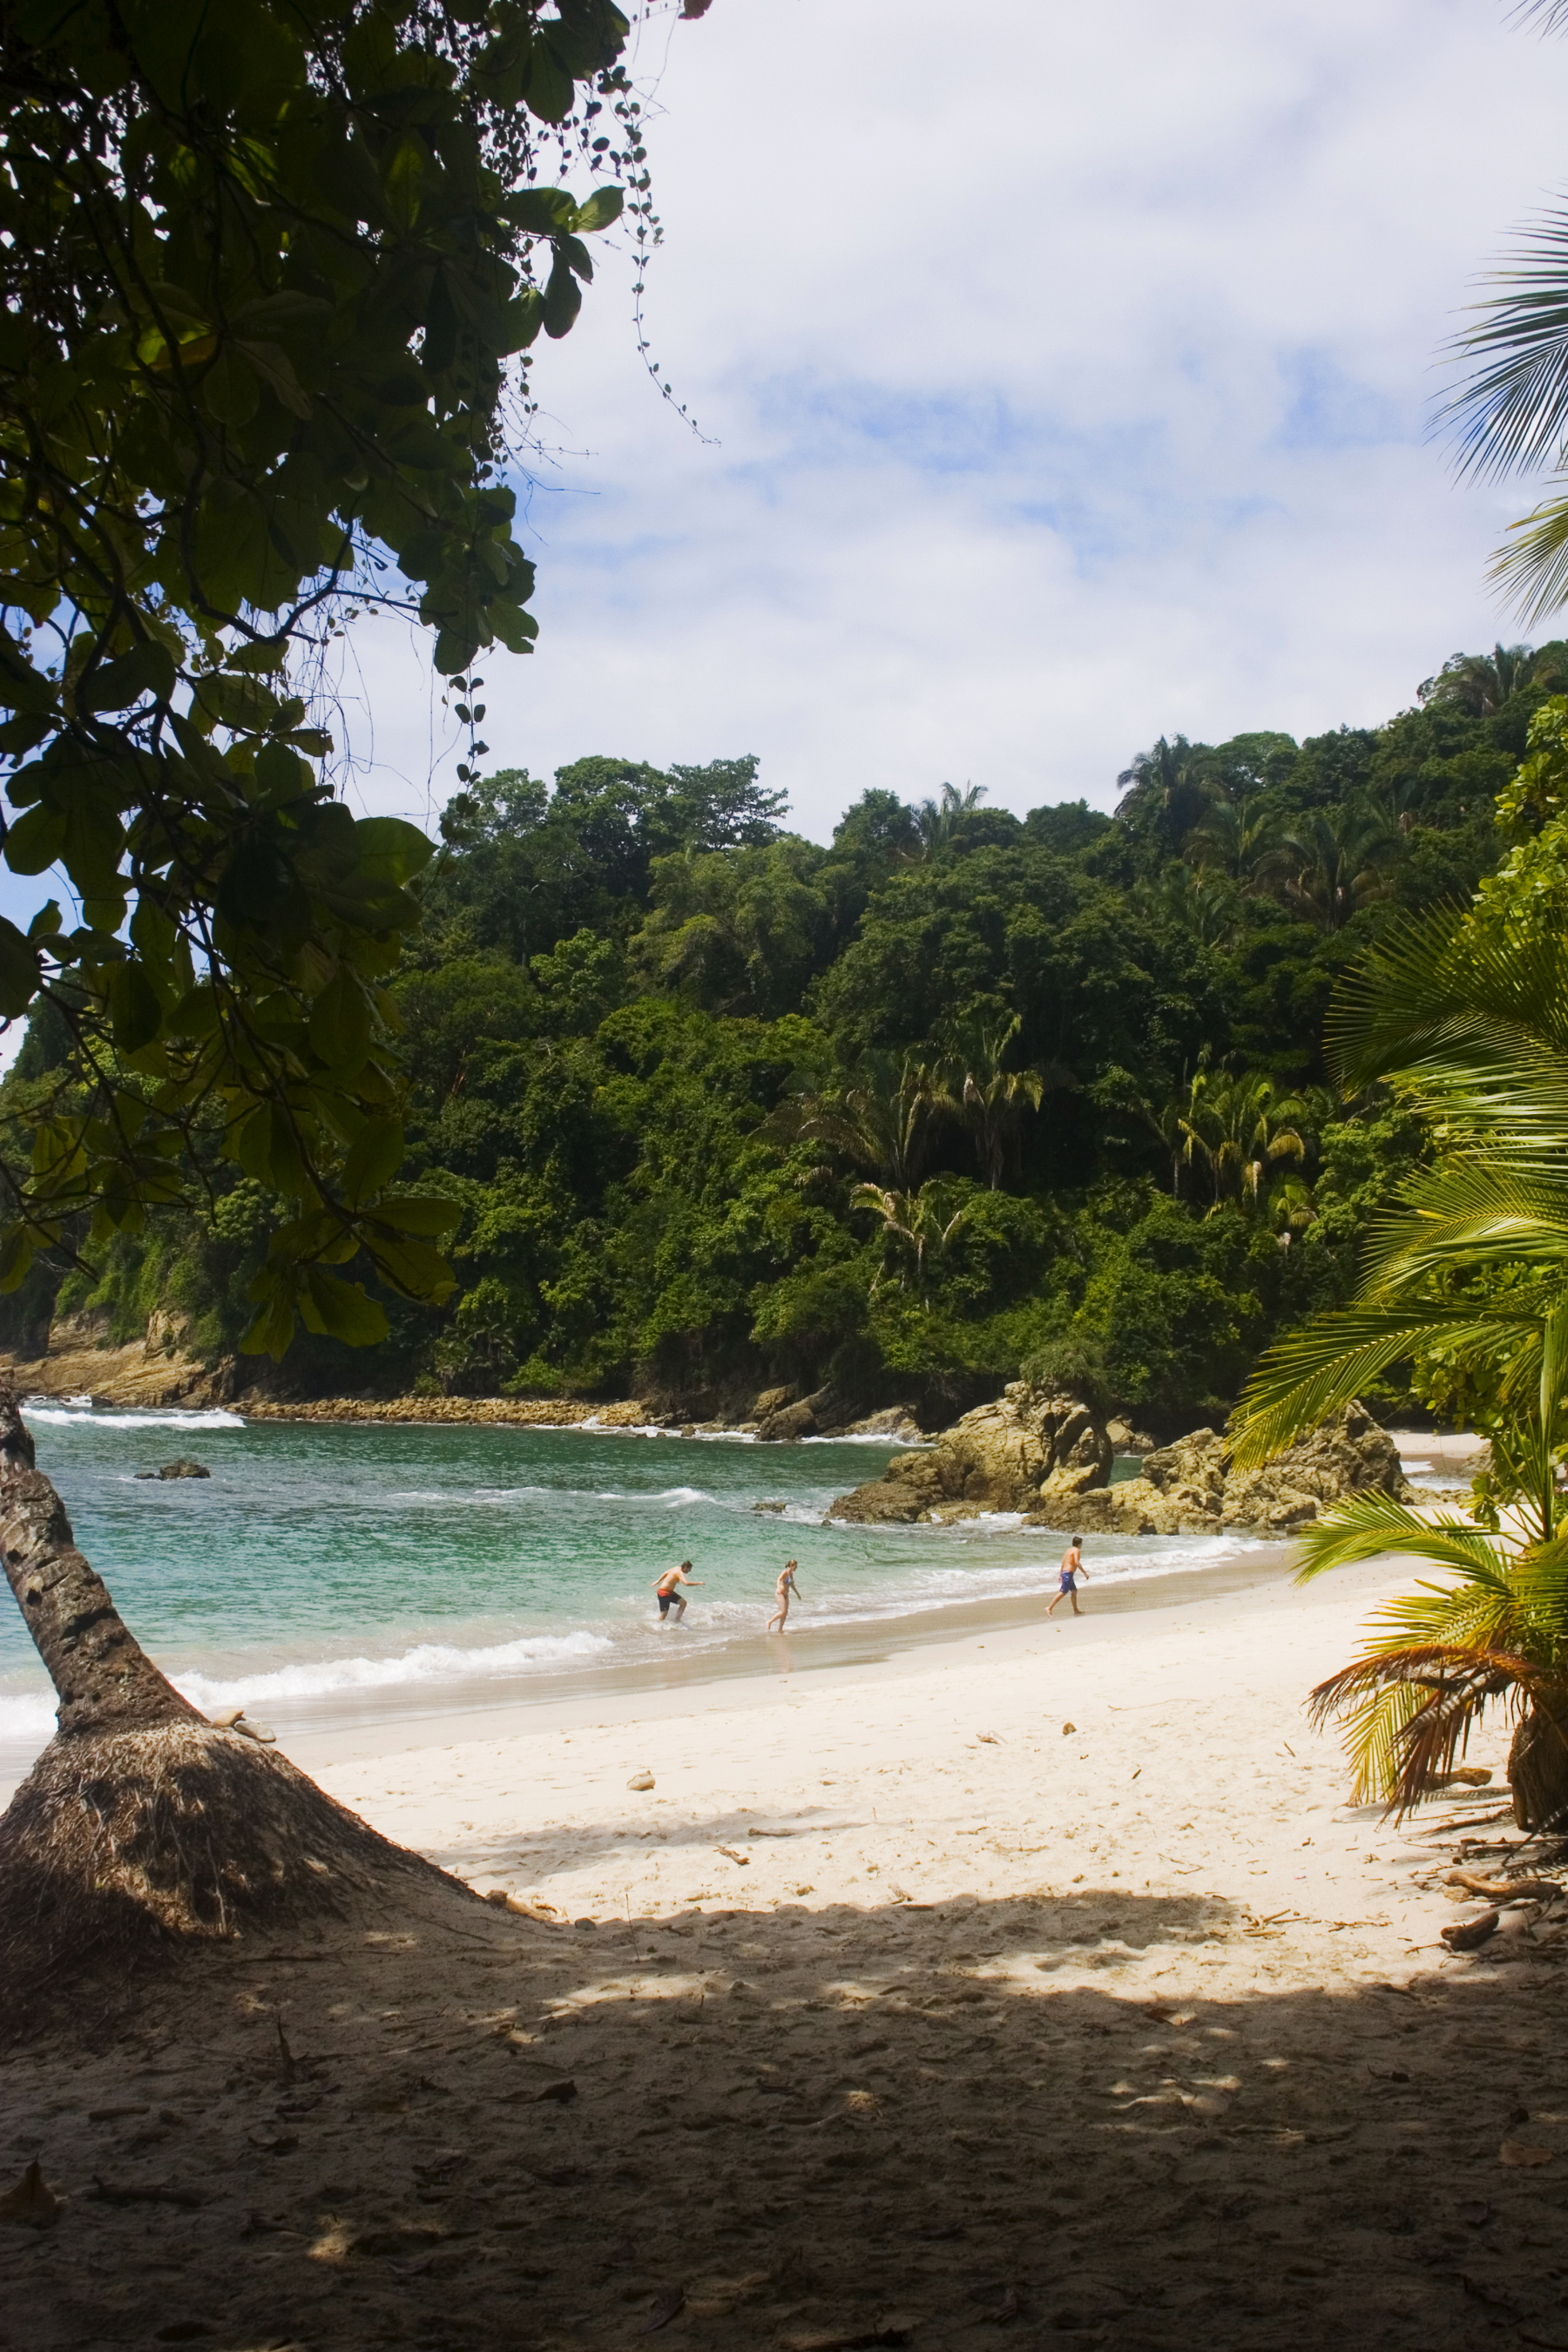 hidden cove in the Parque Manuel Antonio